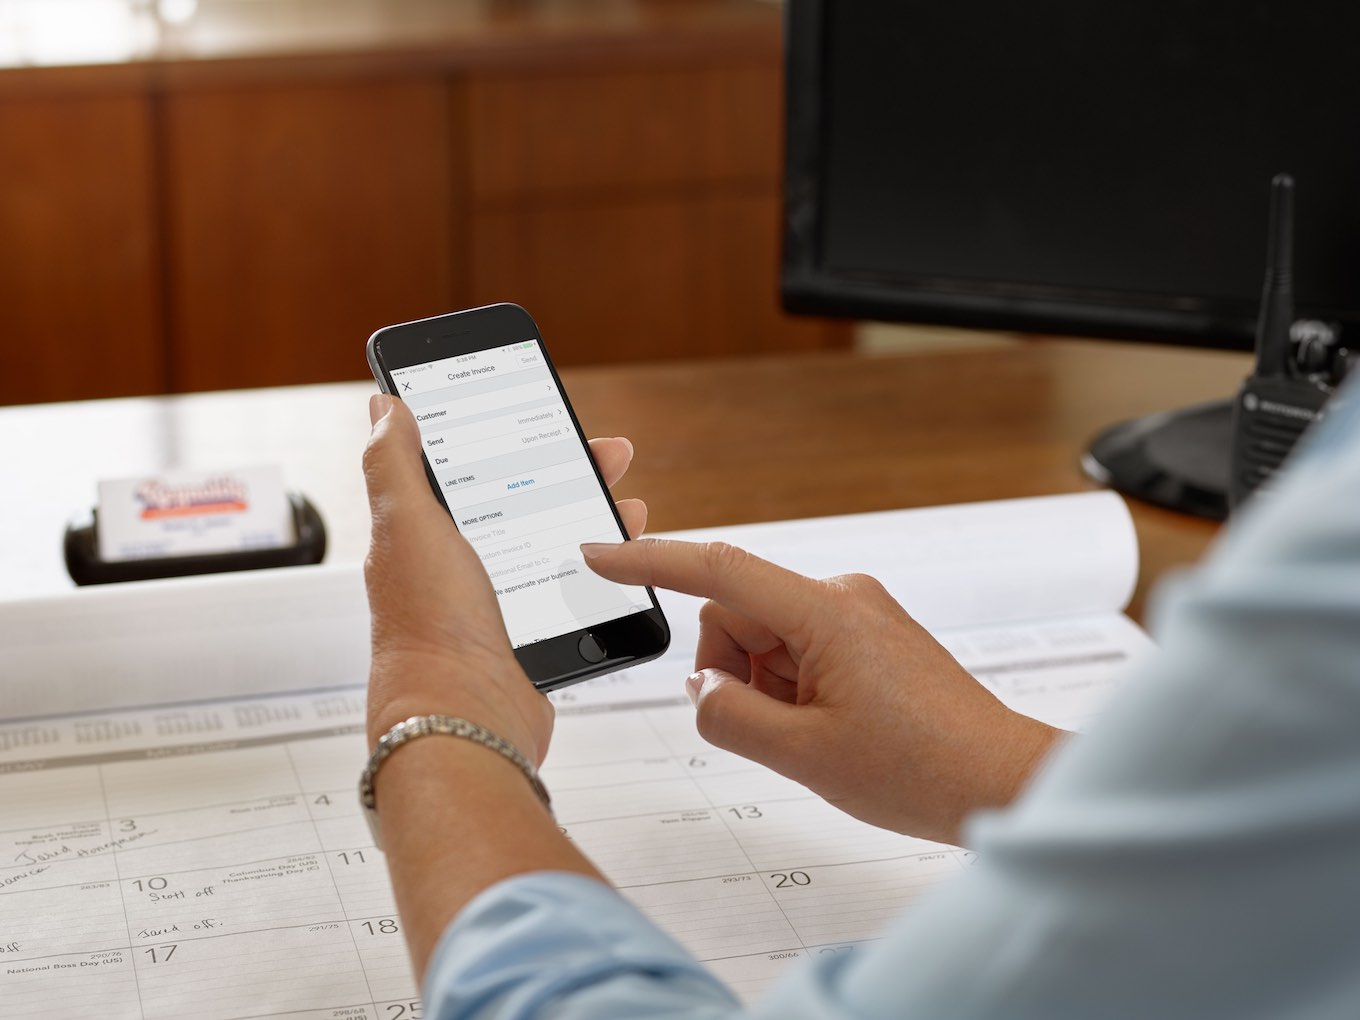 The invoicing app feature on an iphone